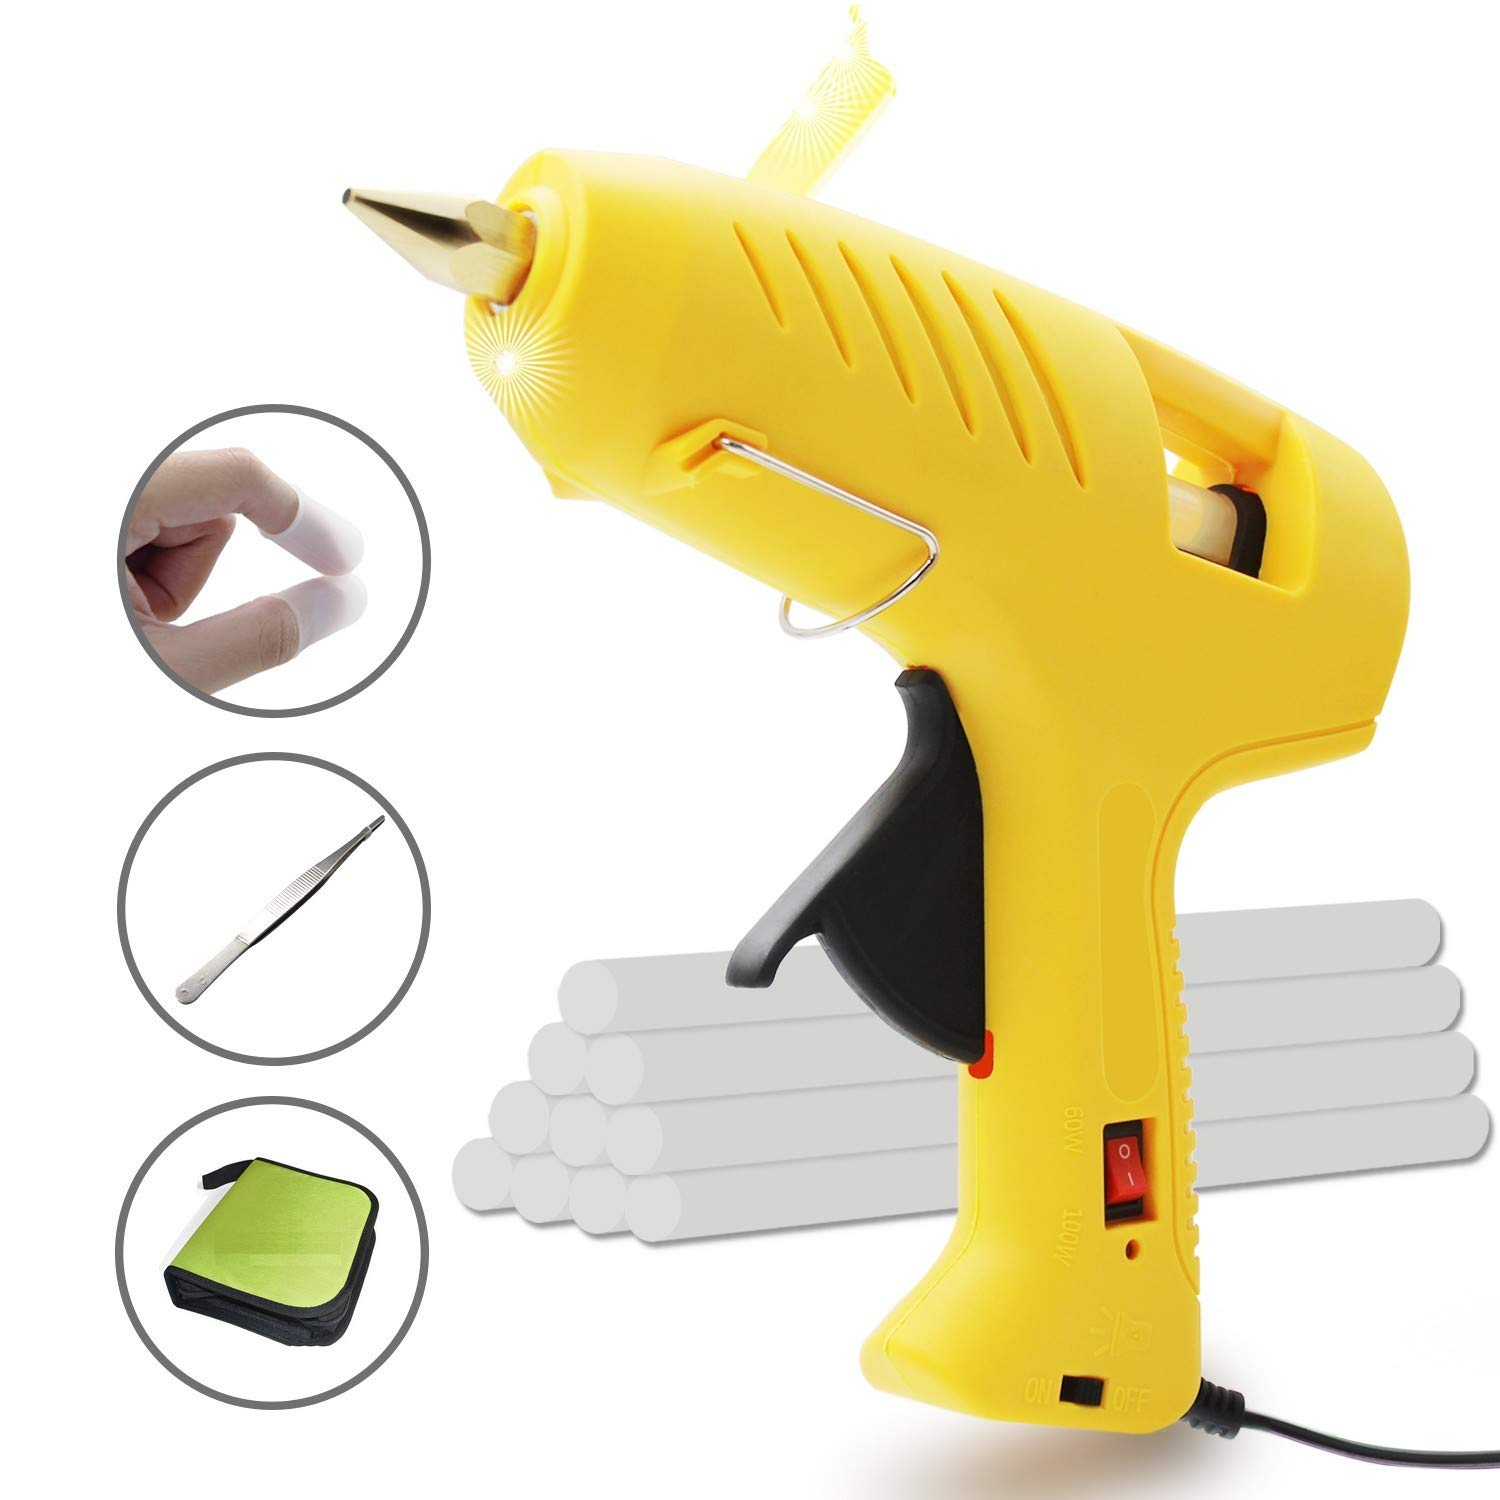 Hot Glue Gun with LED Light, Full Size with Dual Power, High Temperature, Heavy Duty, Melt Glue Gun Kit with Carry Bag, 10pcs Glue Sticks, 60/100W for DIY, Decoration, Crafts, Home Repair and more. Un